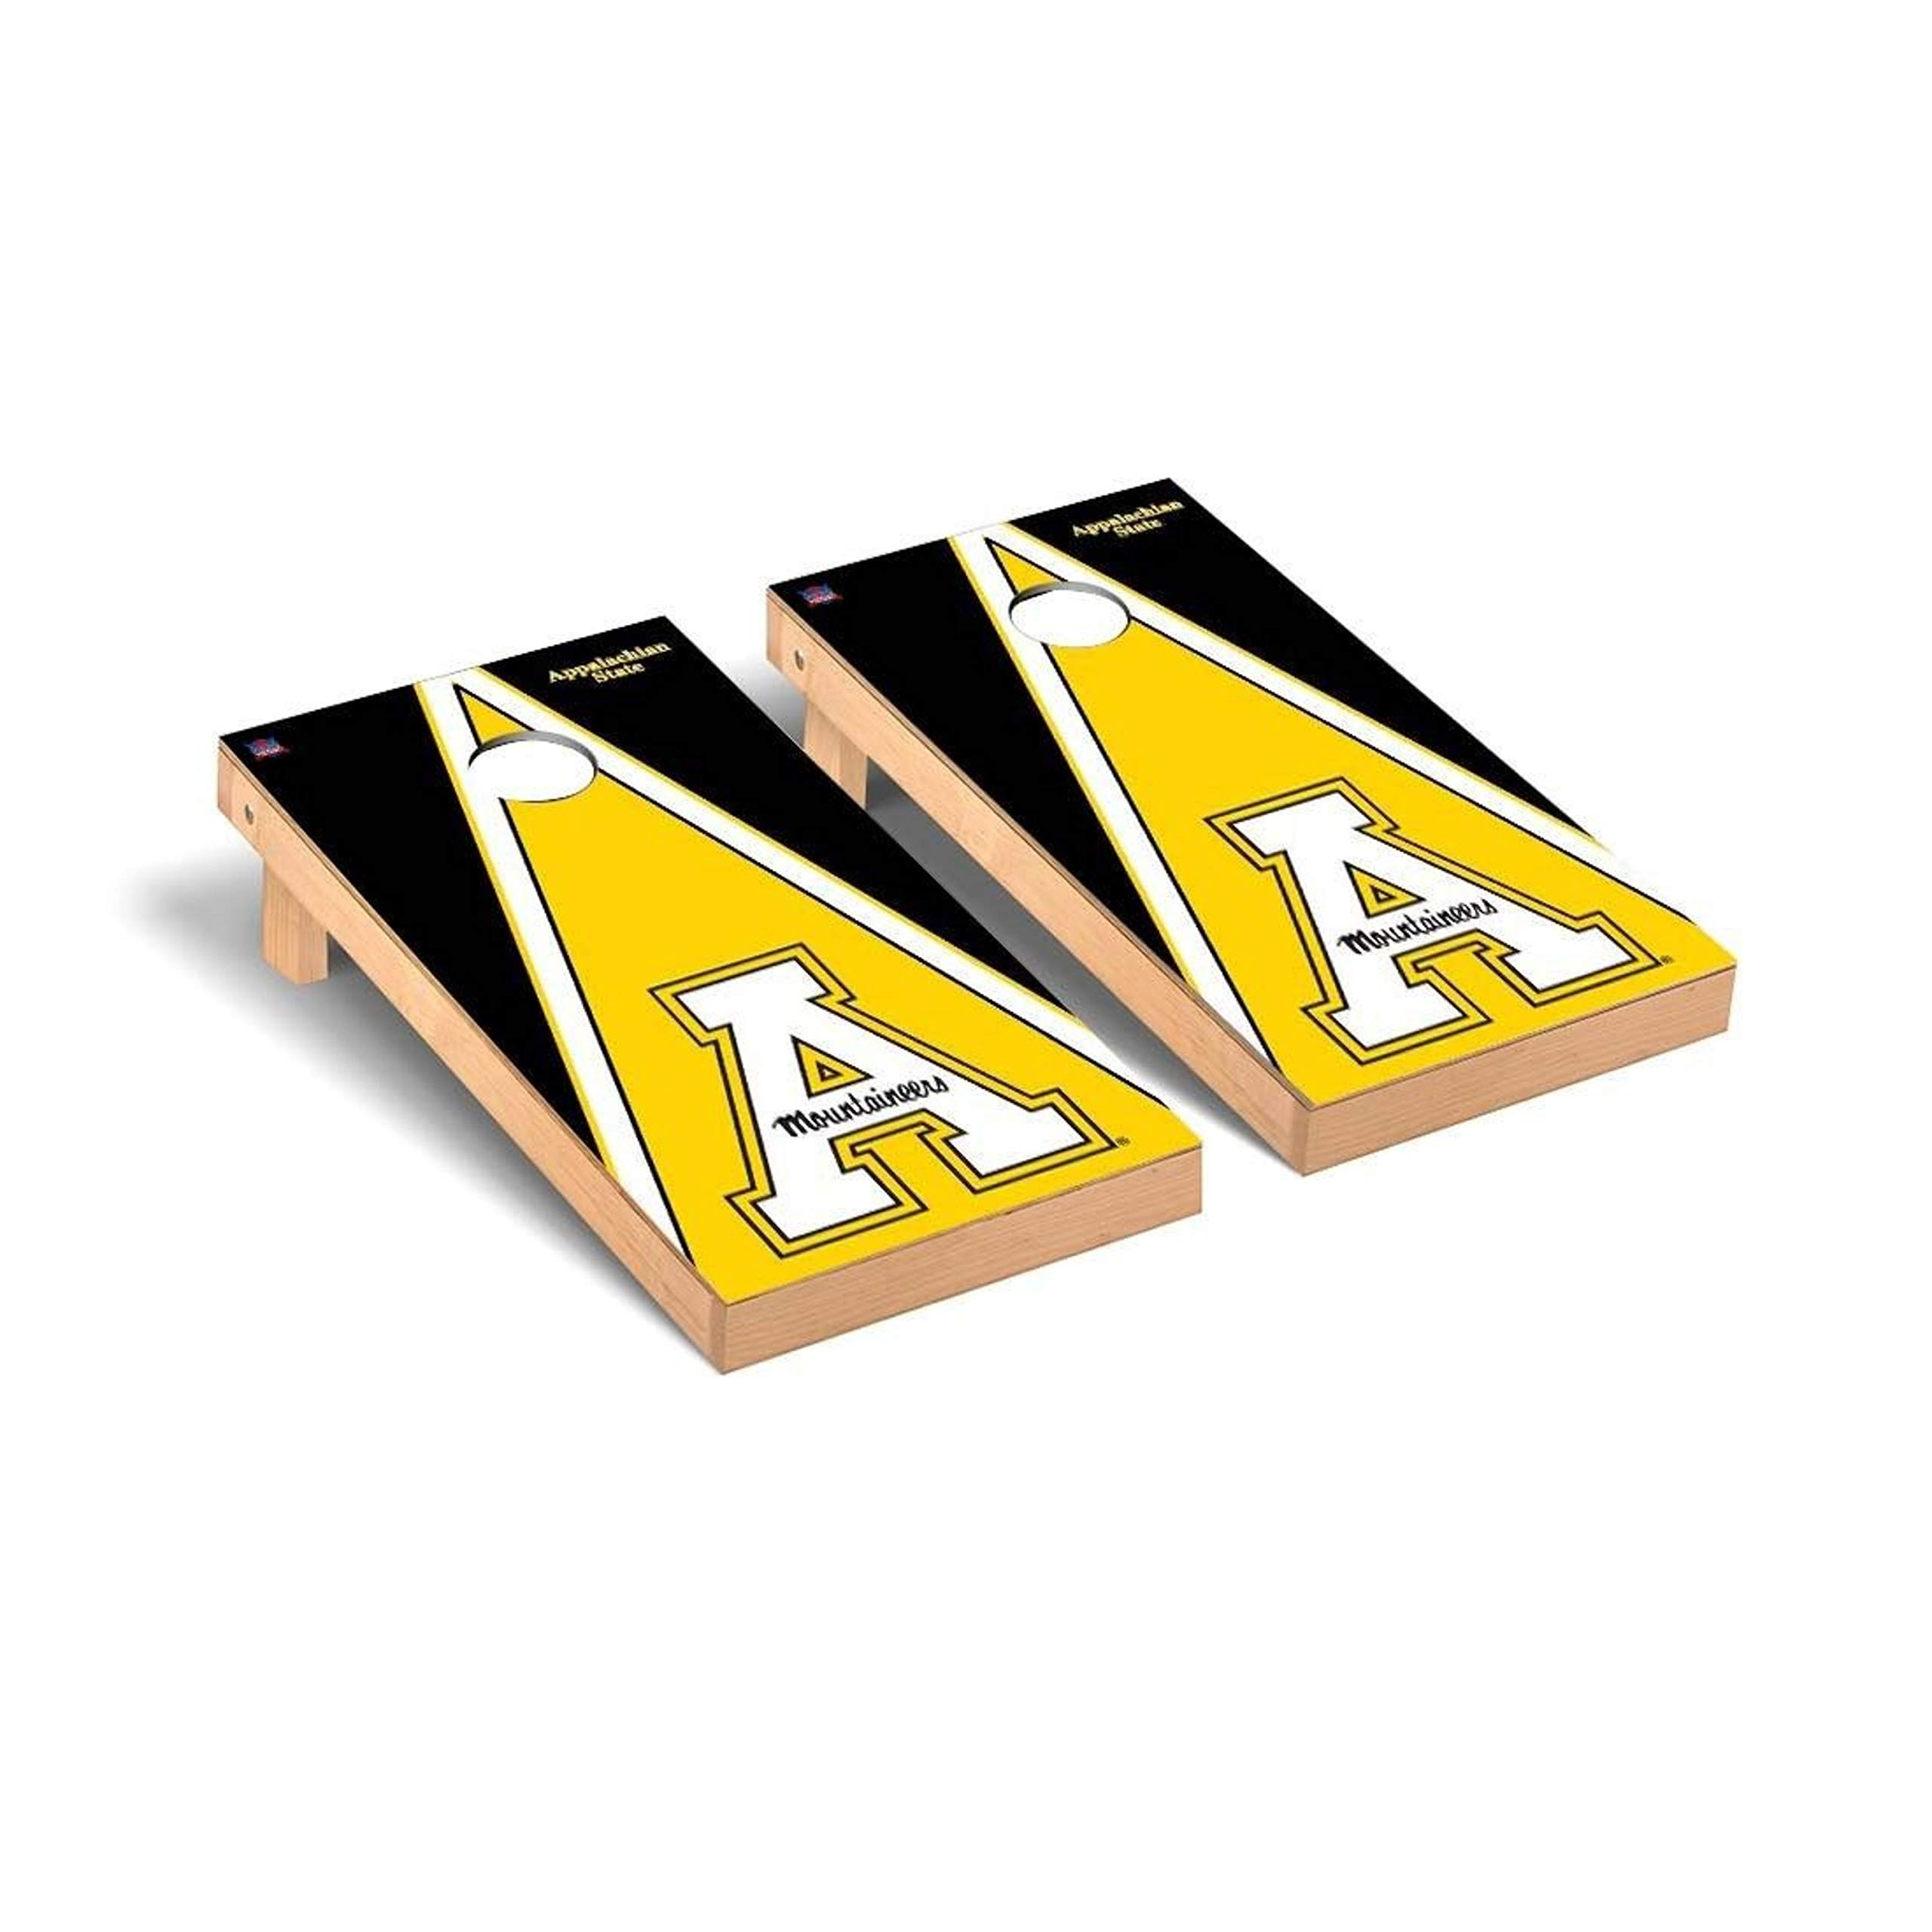 Victory Tailgate Regulation Collegiate NCAA Triangle Series Cornhole Board Set - 2 Boards, 8 Bags - Appalachian State Mountaineers Black Triangle by Victory Tailgate